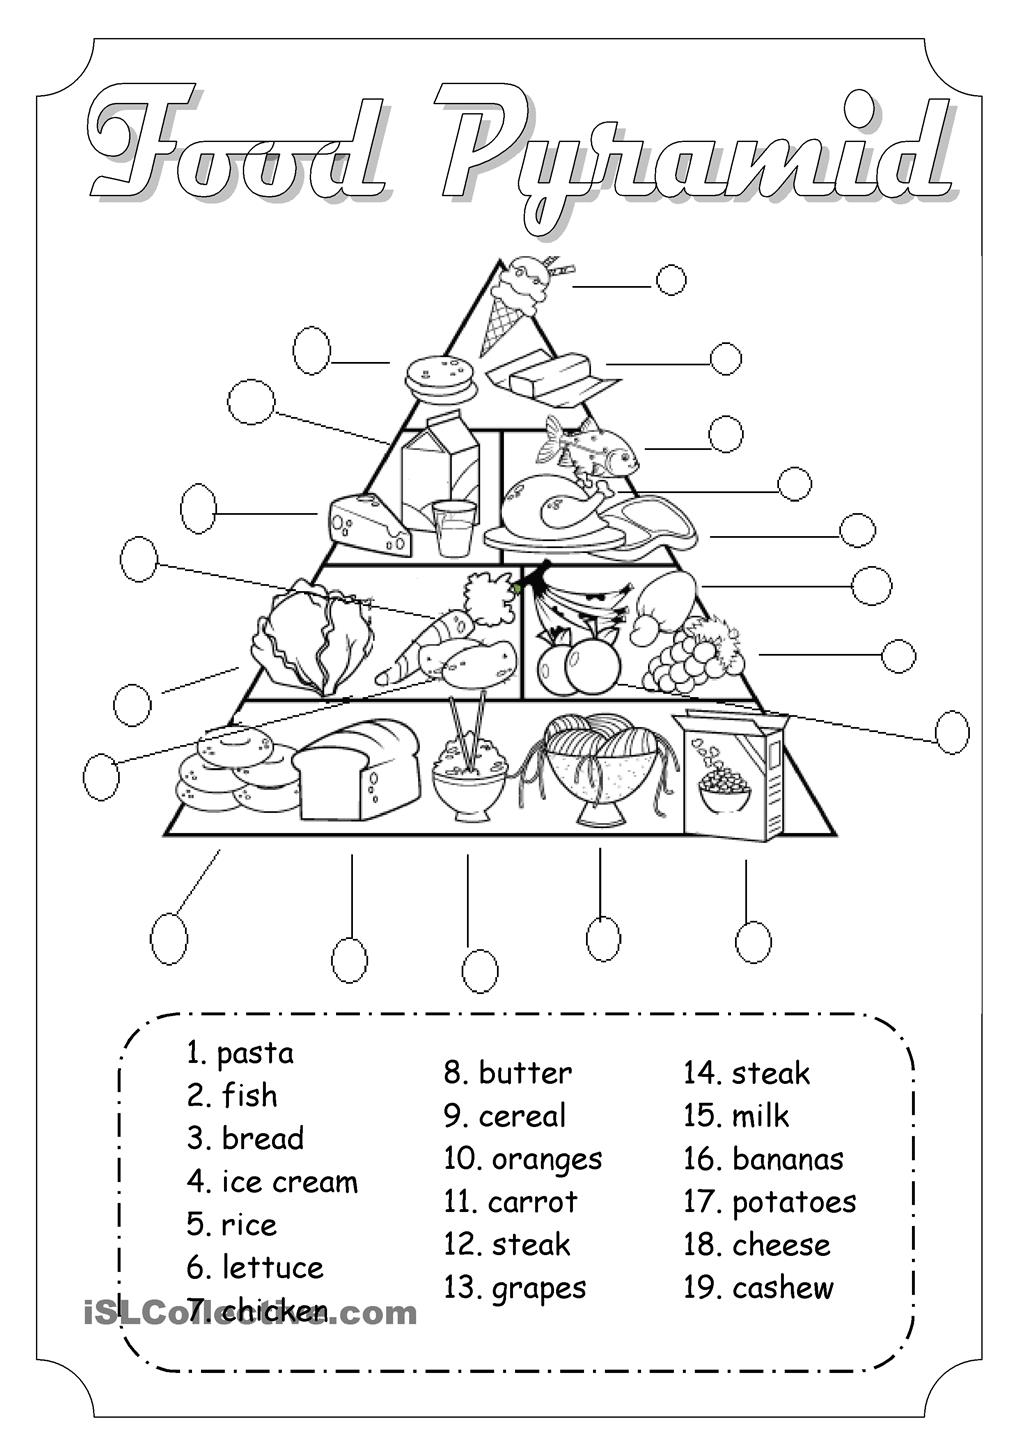 12 Best Images of Food Pyramid Worksheet For Teens